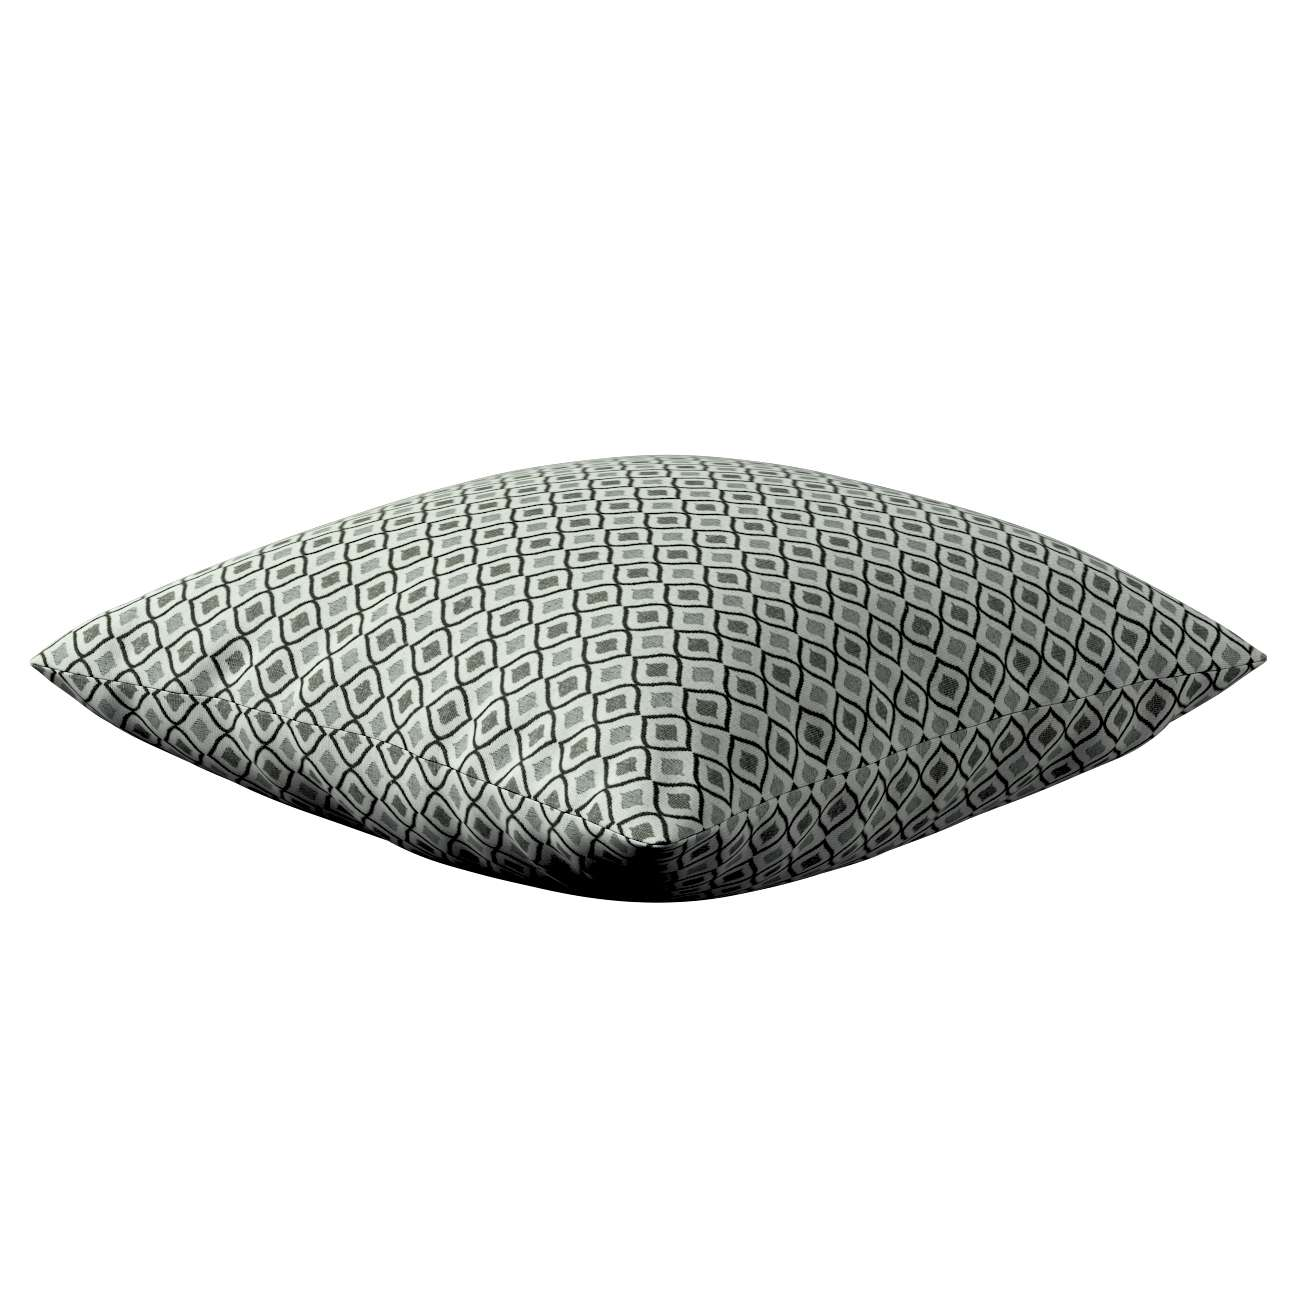 Kinga cushion cover in collection Black & White, fabric: 142-76